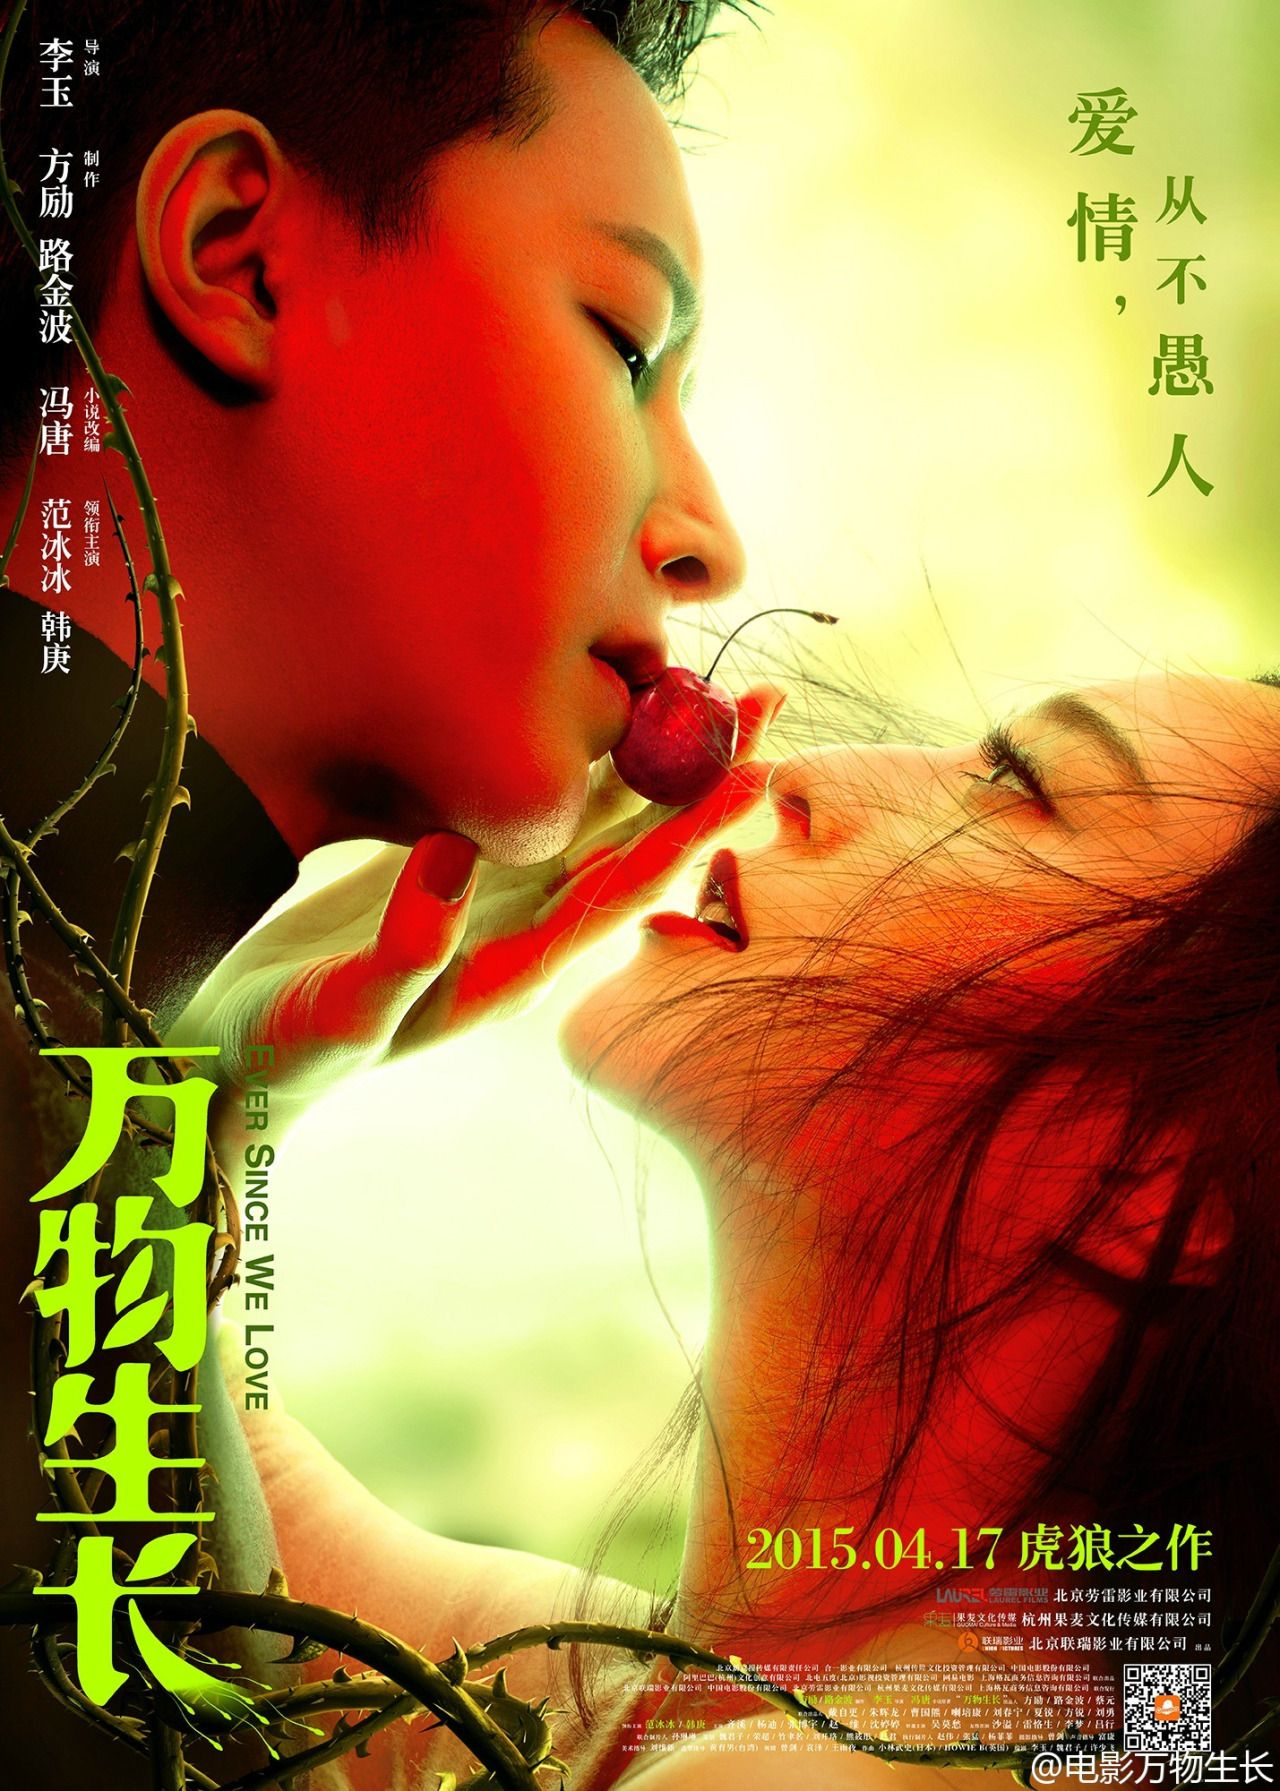 Fan Bingbing Gets Mega Insurance Policy For Face Chinese Movies